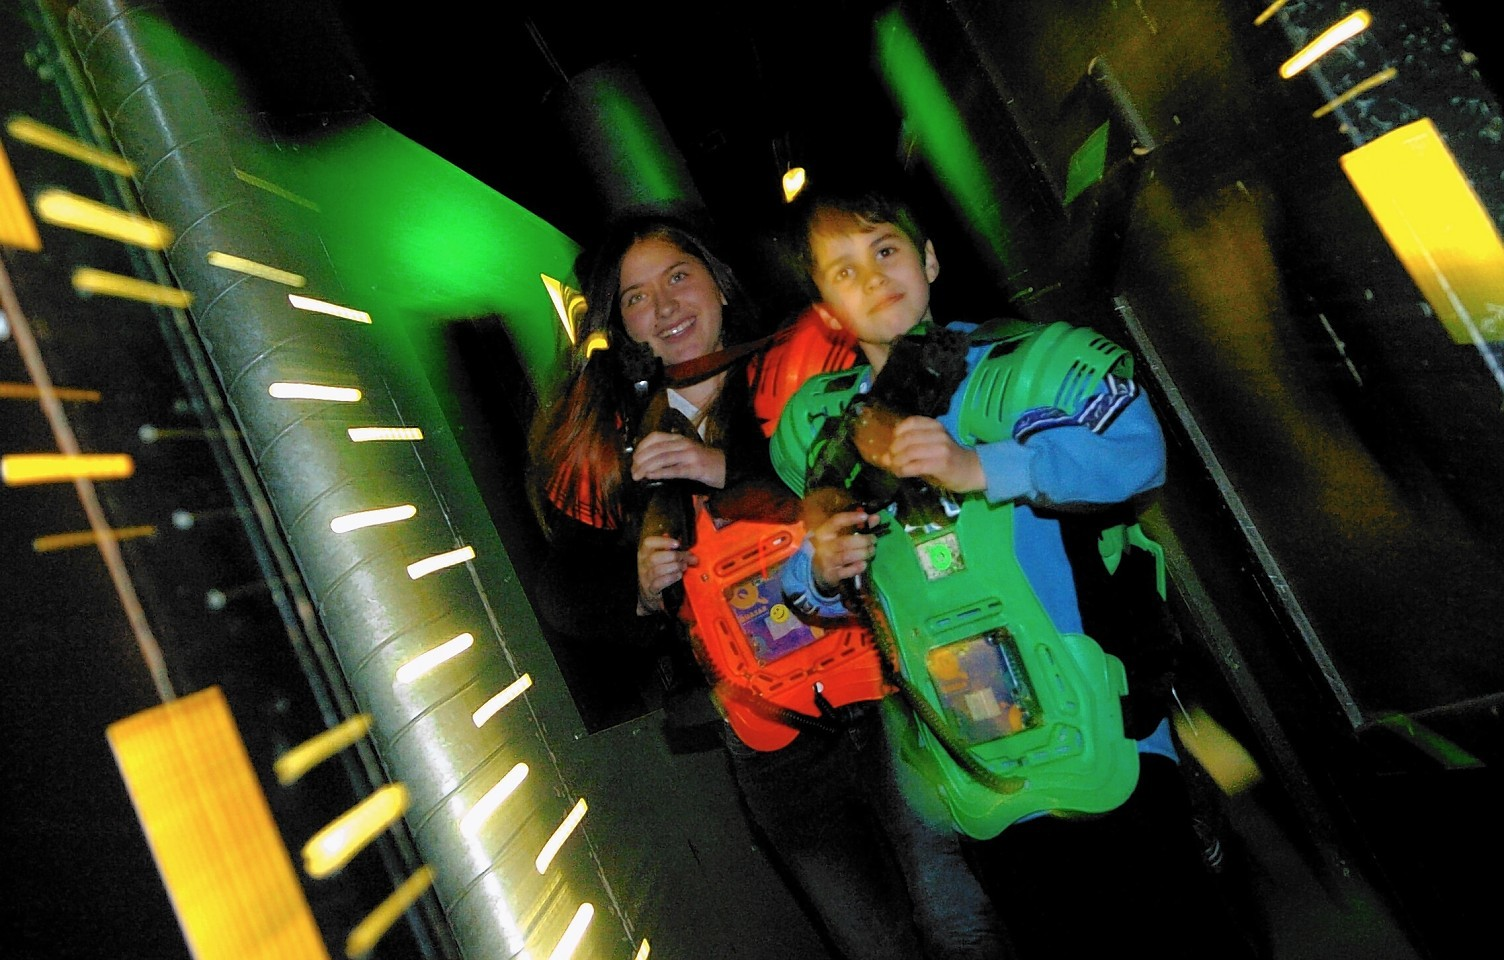 Laser tag in action